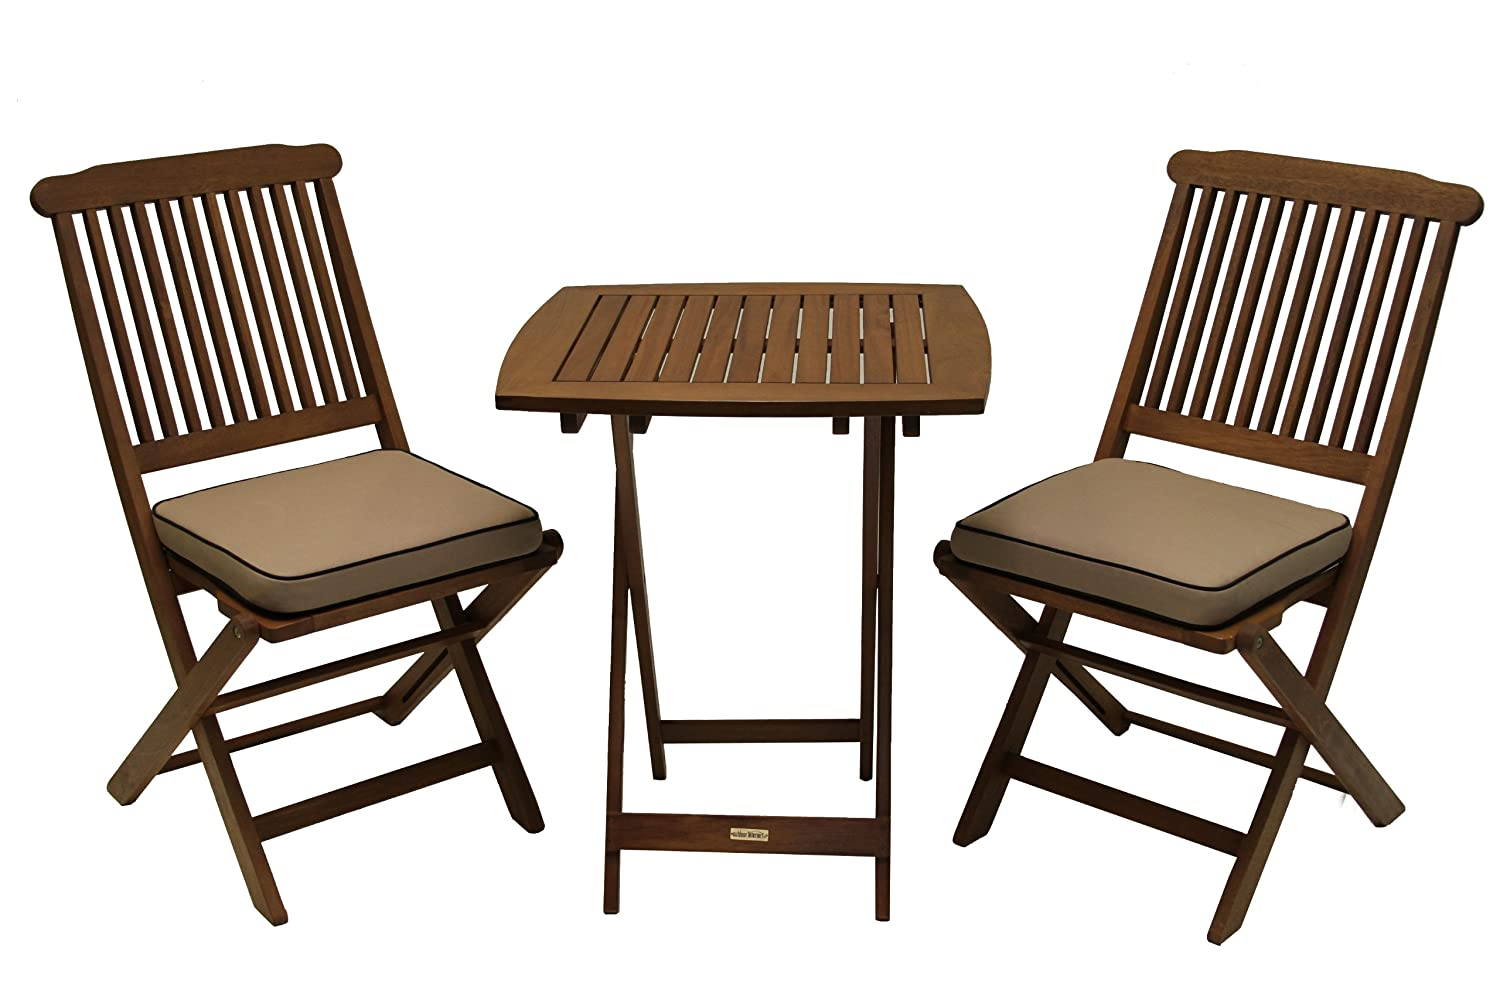 Wood patio furniture sets at the galleria for Outdoor patio furniture